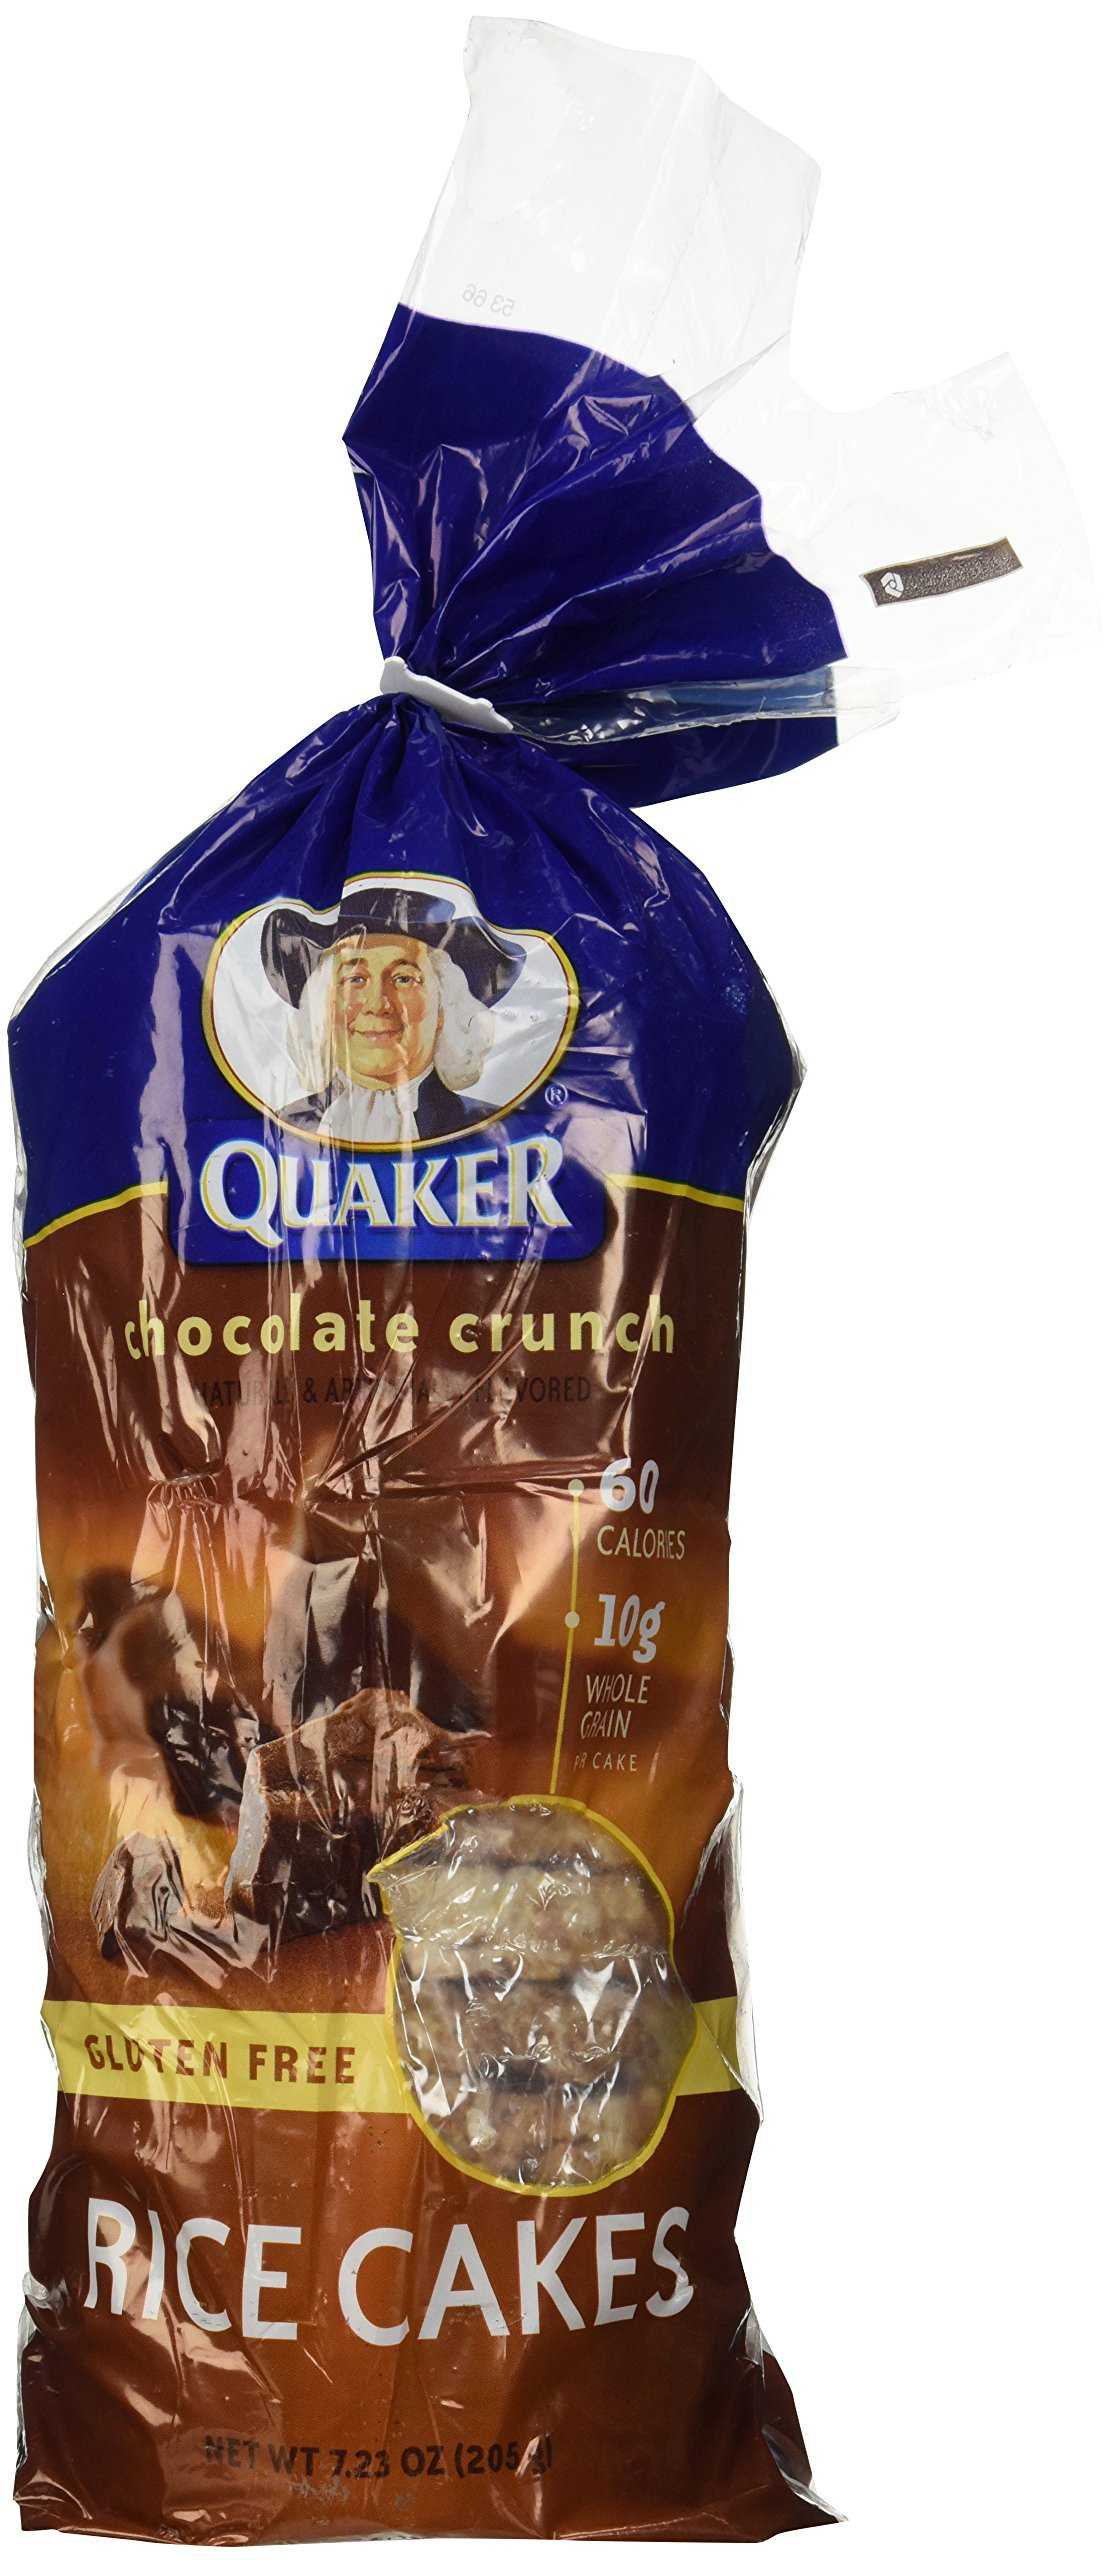 Quaker Rice Cakes Chocolate : Amazon.com: Grocery ...